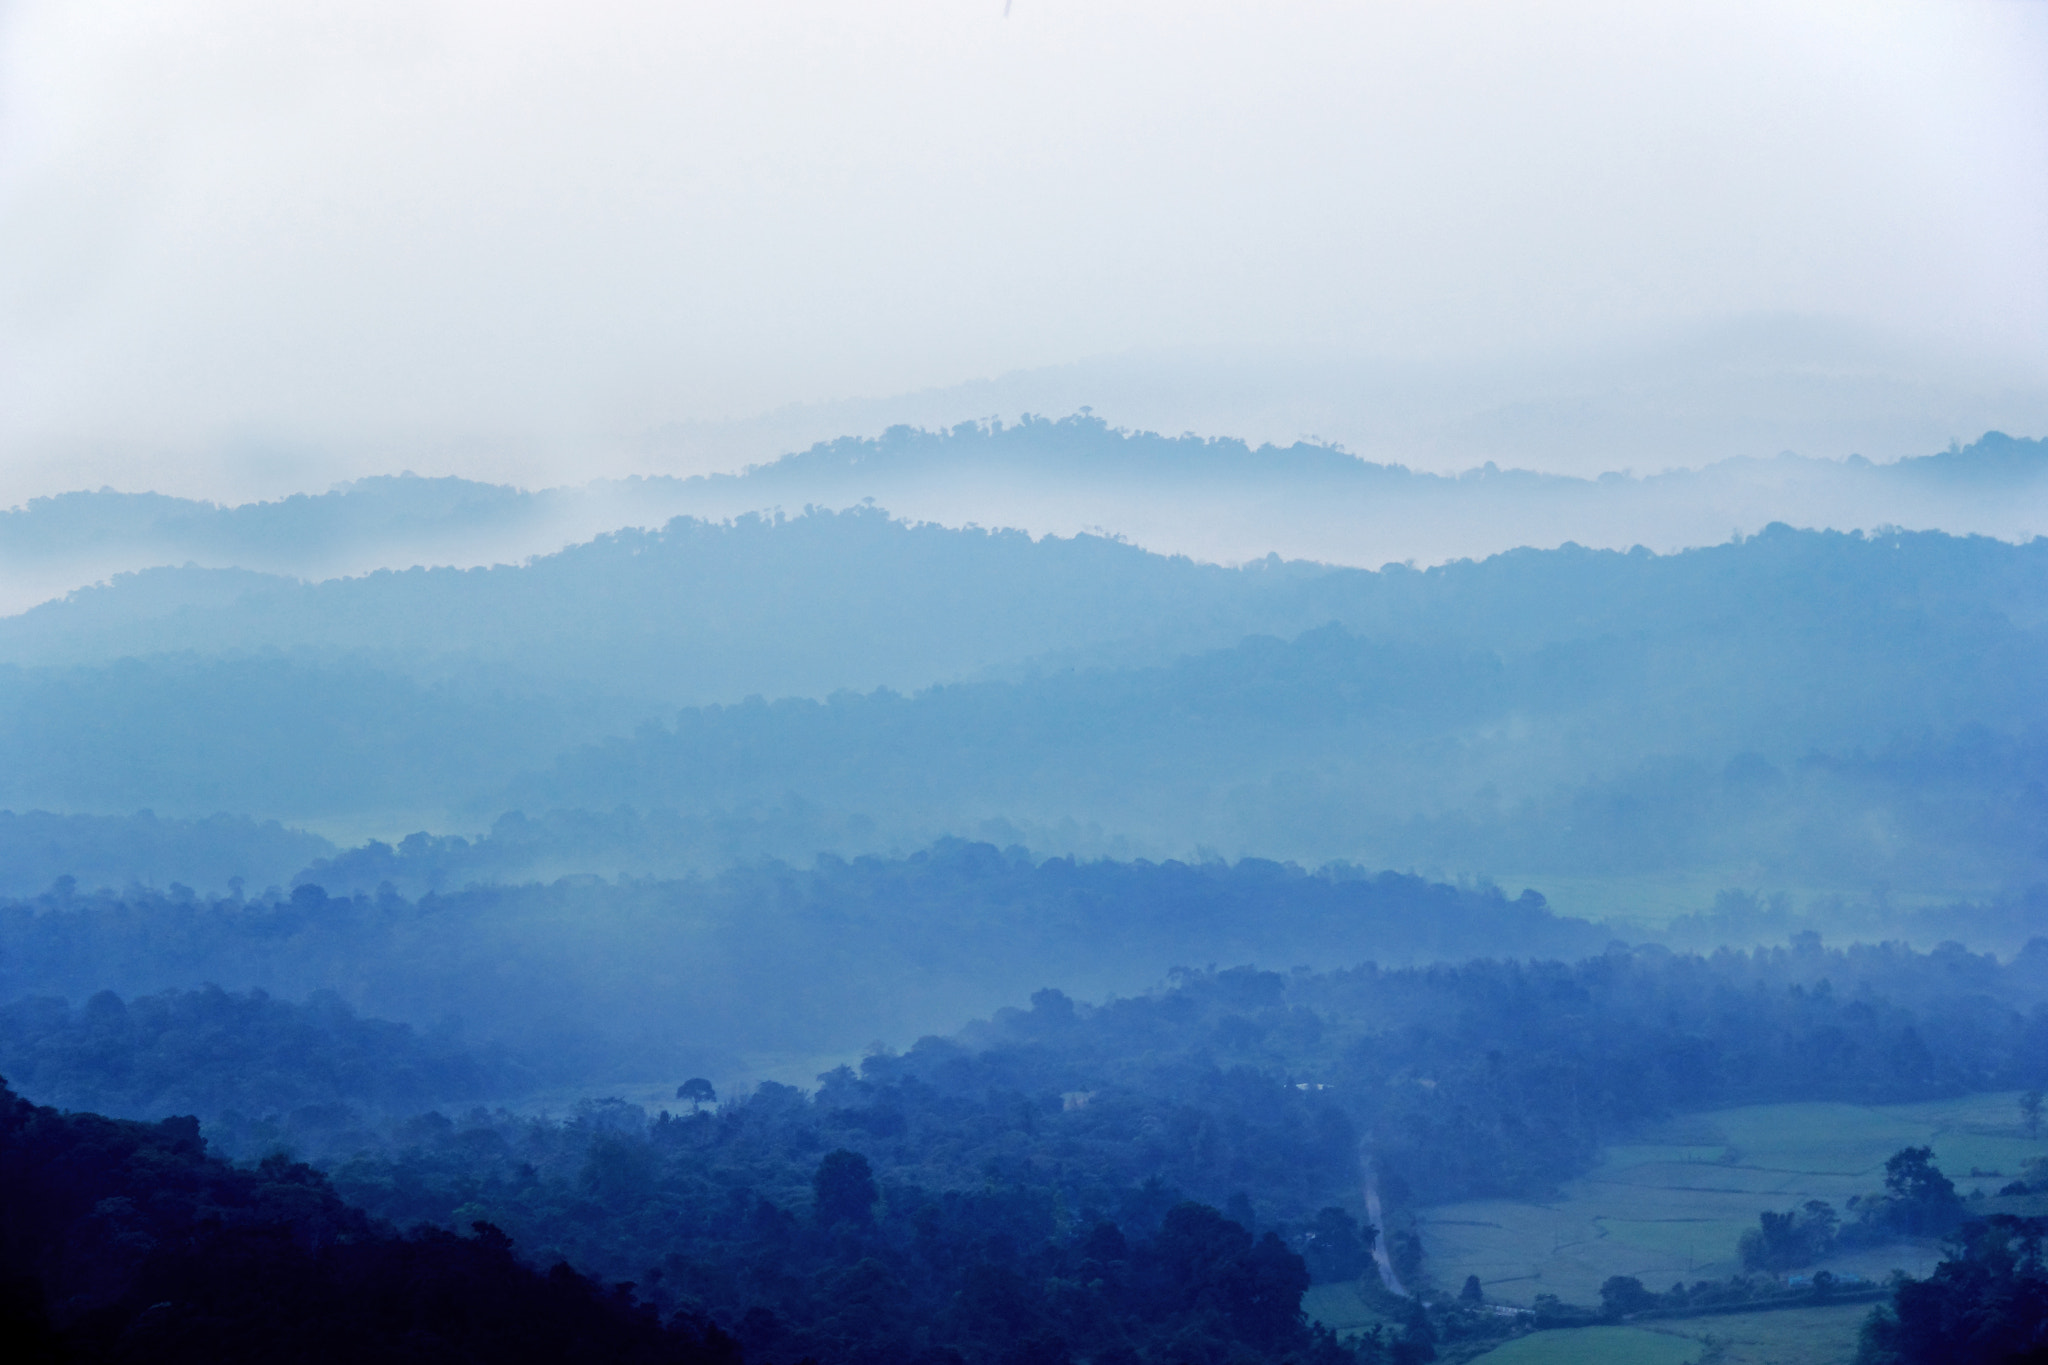 Photograph Smoky Mountains of Coorg! by Vineet Singh on 500px